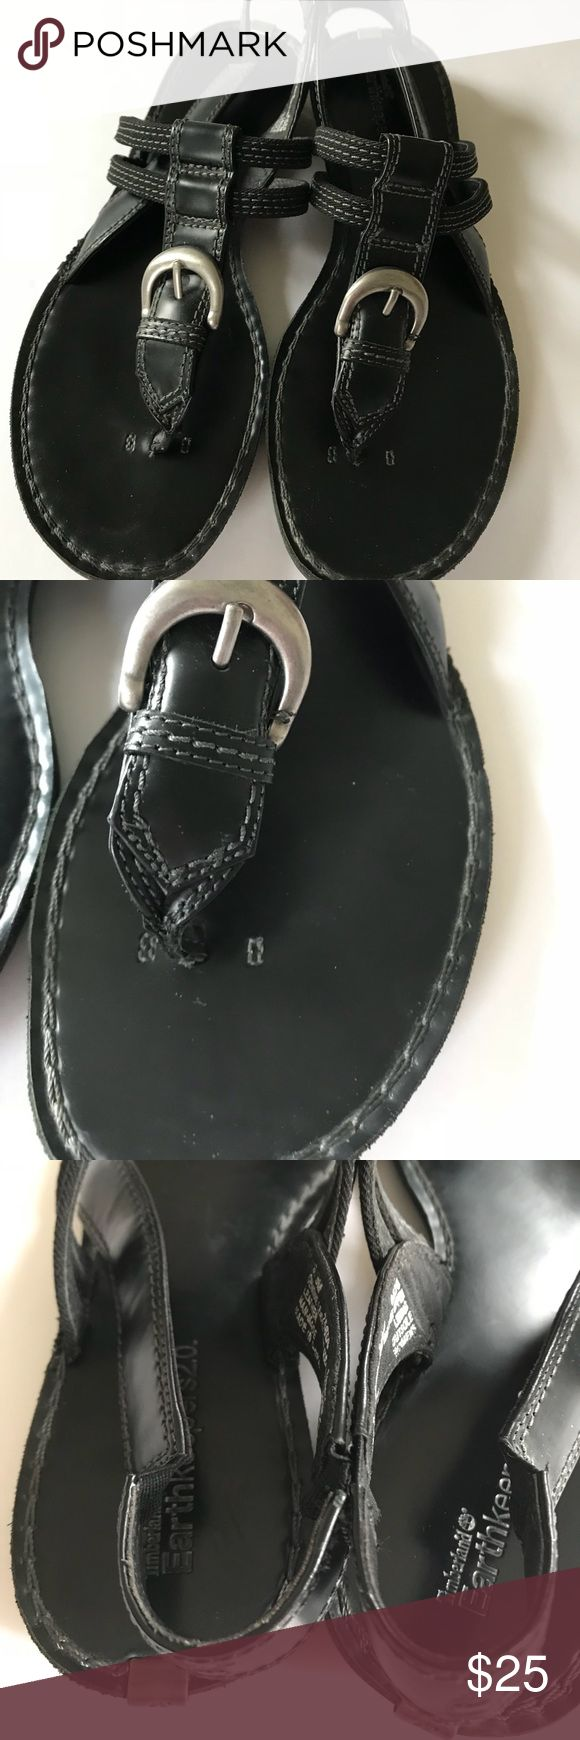 Timberland earthkeepers black leather sandals Timberland Earthkeepers Leather Thong Flat Sandals Black  Pre-Owned.  Some wear on Soles. Please look at photos. Genuine Leather and Man Made Upper Leather Lining Man Made Outsole US Size 8.5 Timberland Shoes Sandals